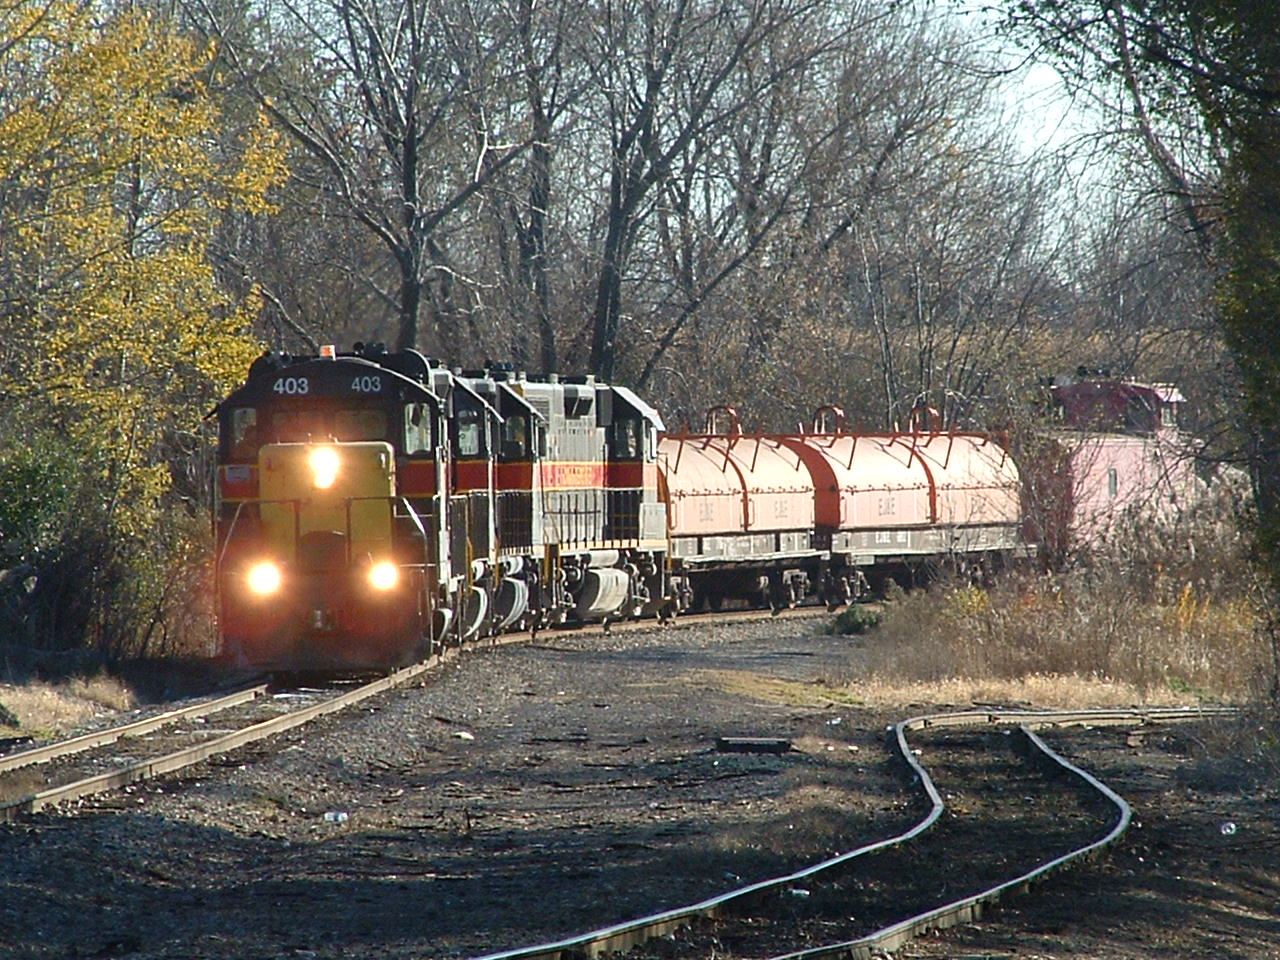 403 shoves up the long track for ex RI main #1. Blue Island, IL